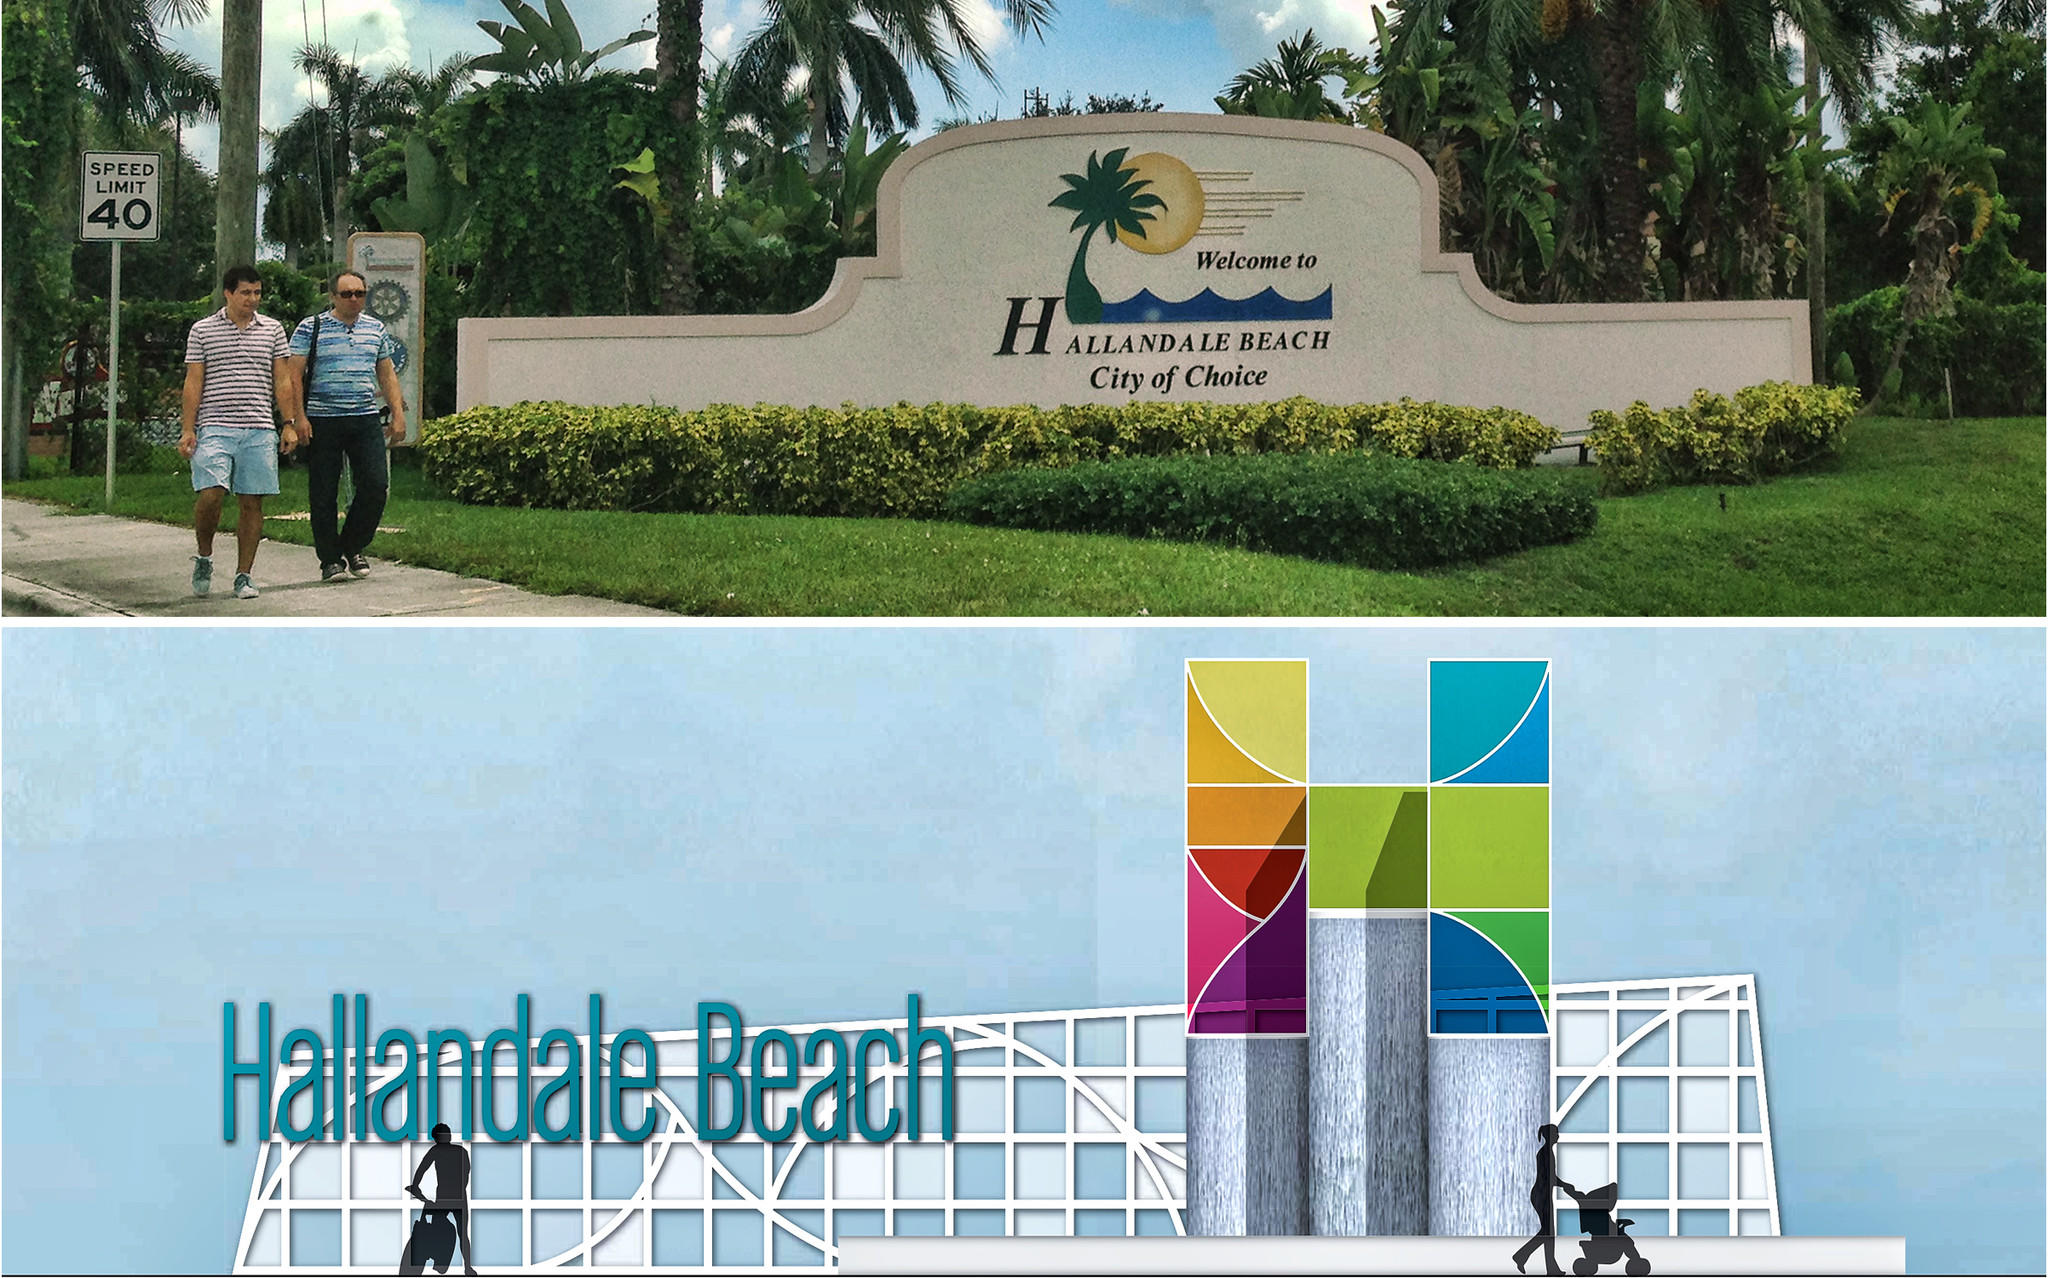 This concrete sign welcoming people to Hallandale Beach will eventually be replaced with a new sign that will cost taxpayers an estimated $293,000.